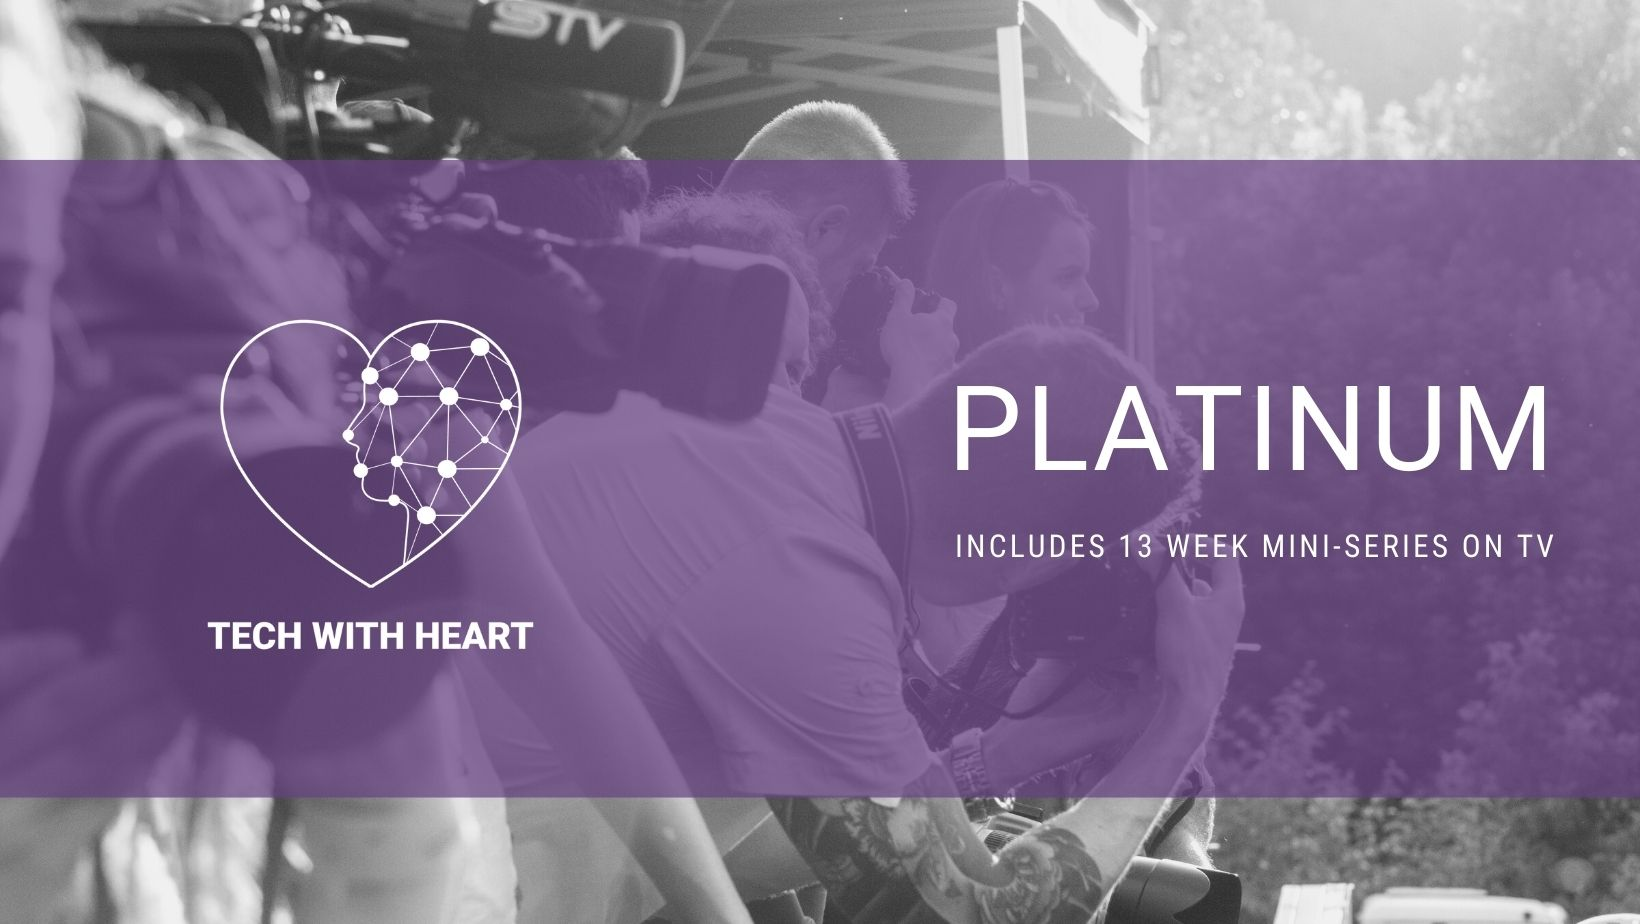 Platinum sponsorship comes with a 13 week mini series on TV